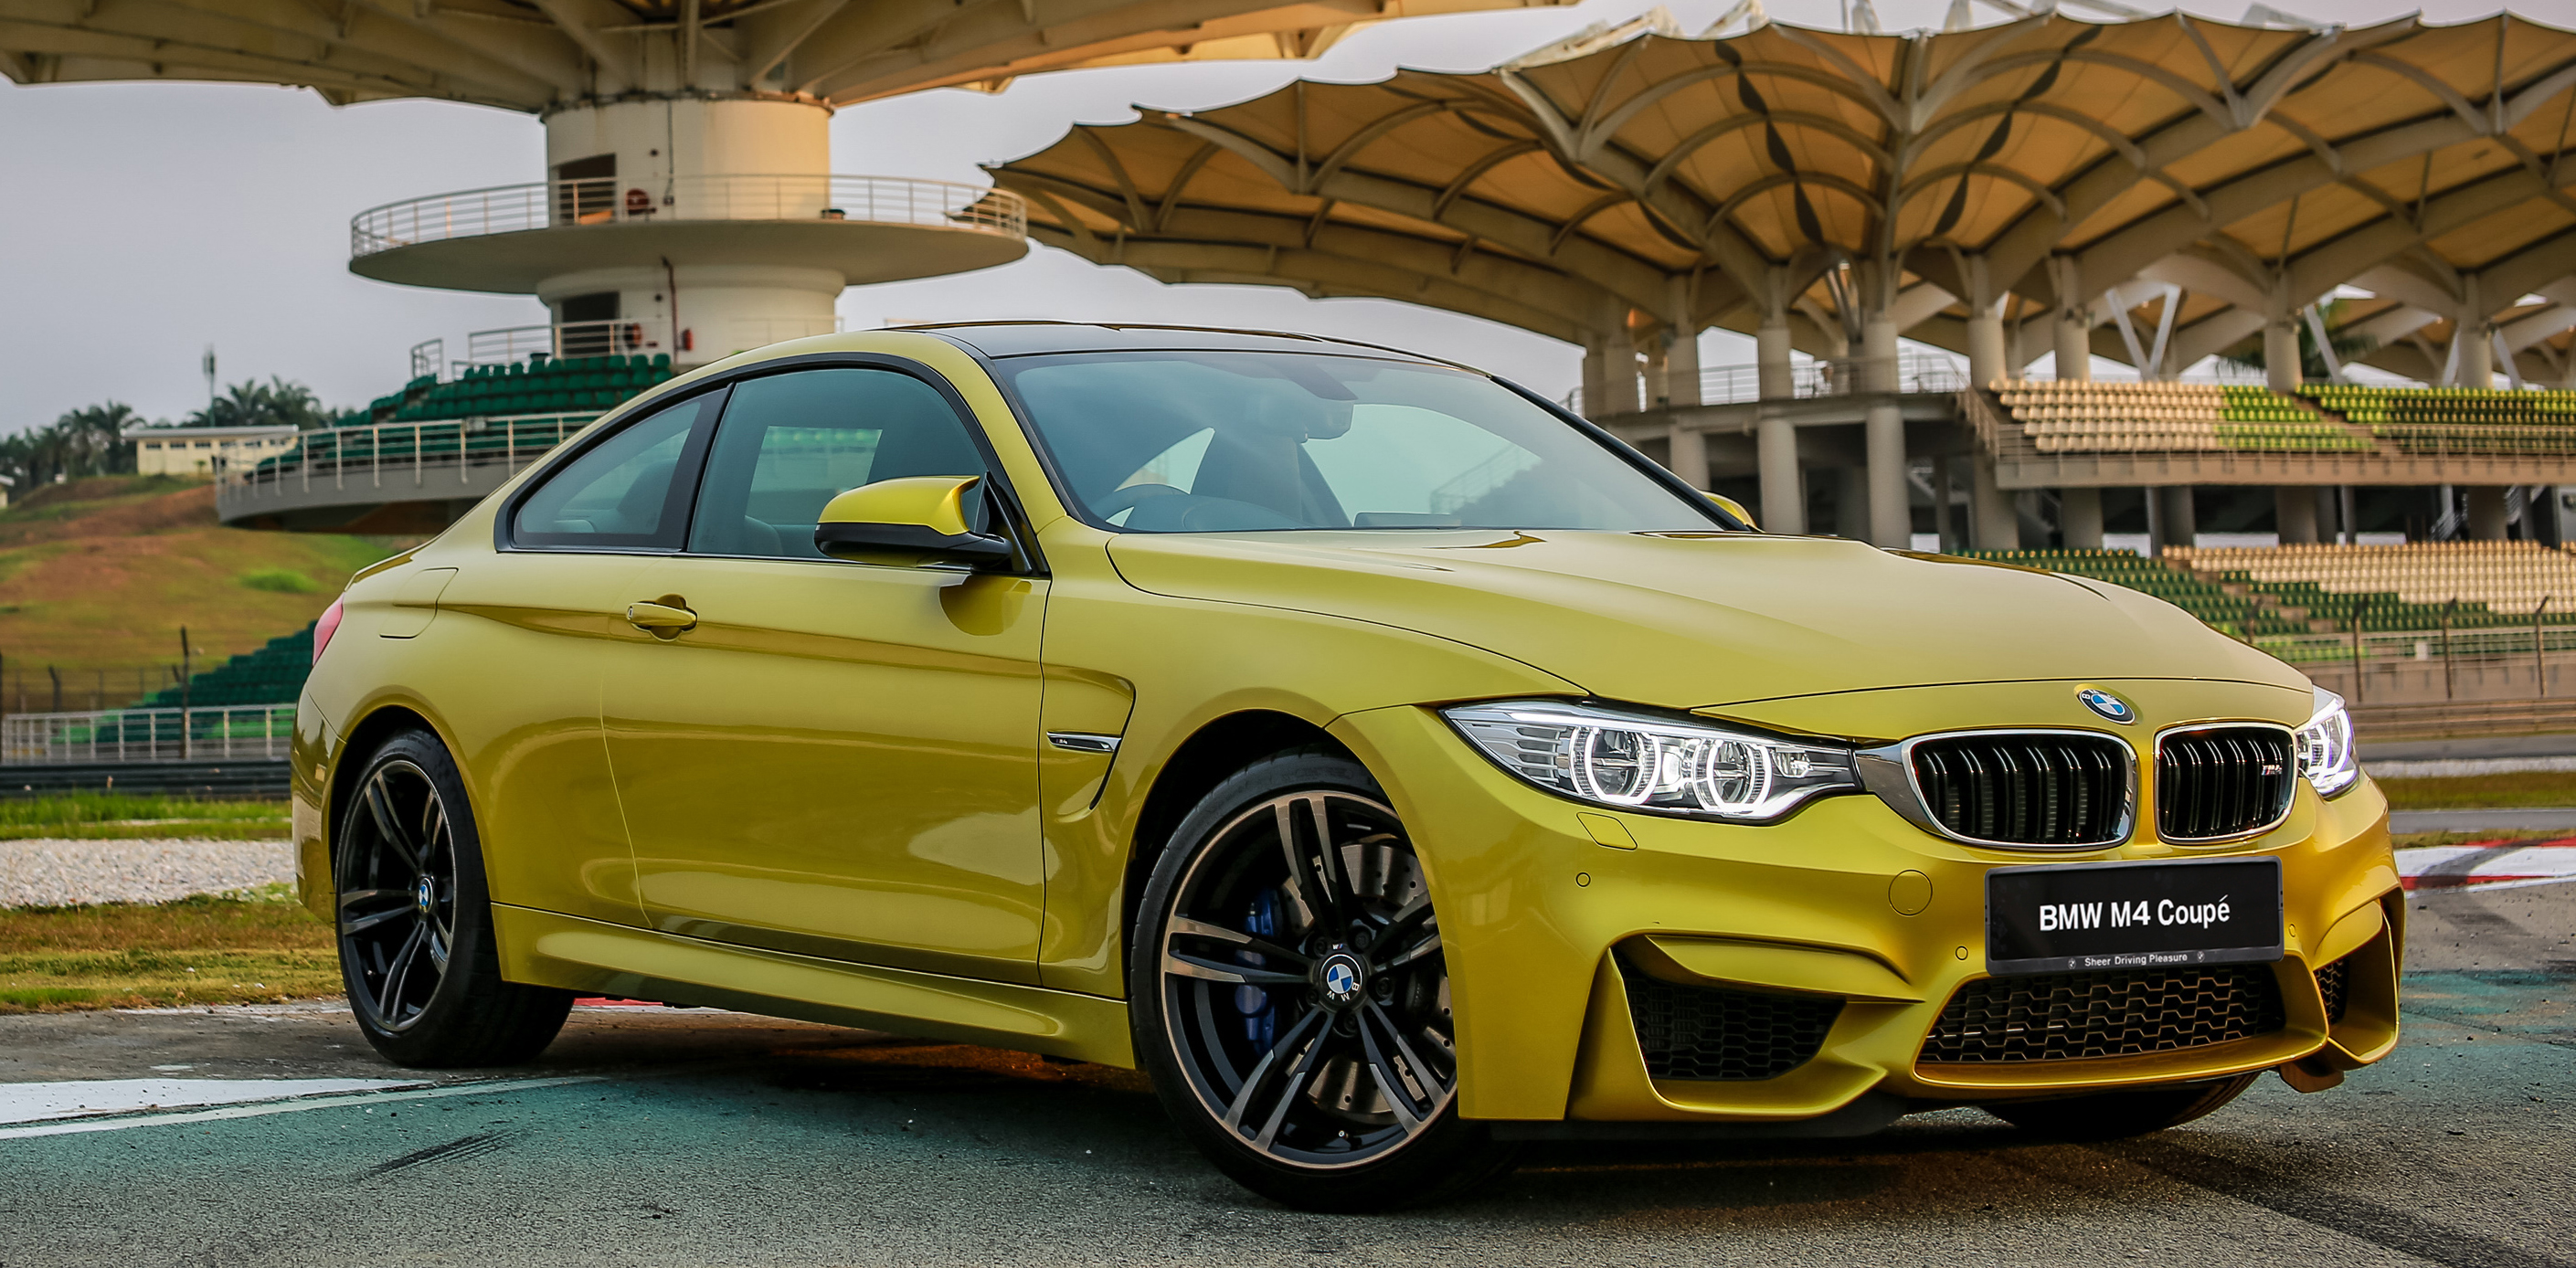 Bmw M4 Price South Africa >> 2014 F80 BMW M3 Sedan and F82 BMW M4 Coupe introduced in Malaysia – RM739k and RM749k Image 255961